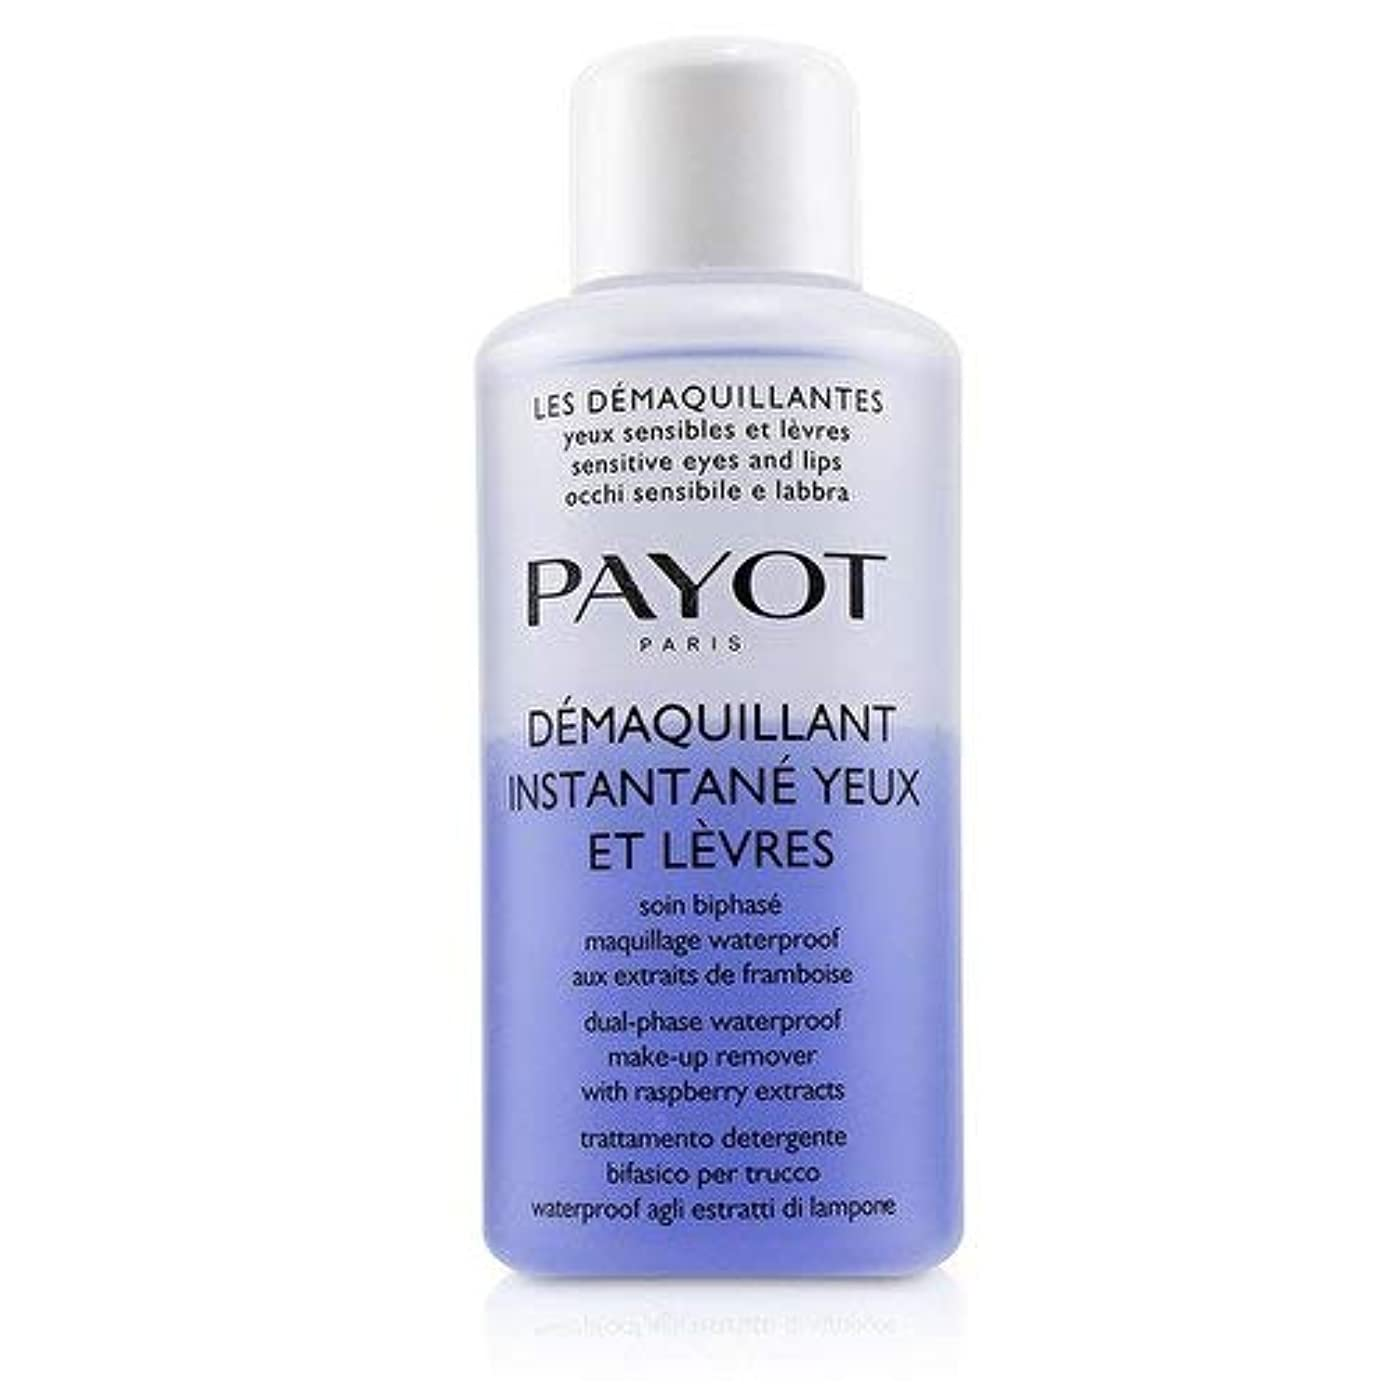 呼吸する浸すハブパイヨ Les Demaquillantes Demaquillant Instantane Yeux Dual-Phase Waterproof Make-Up Remover - For Sensitive Eyes...